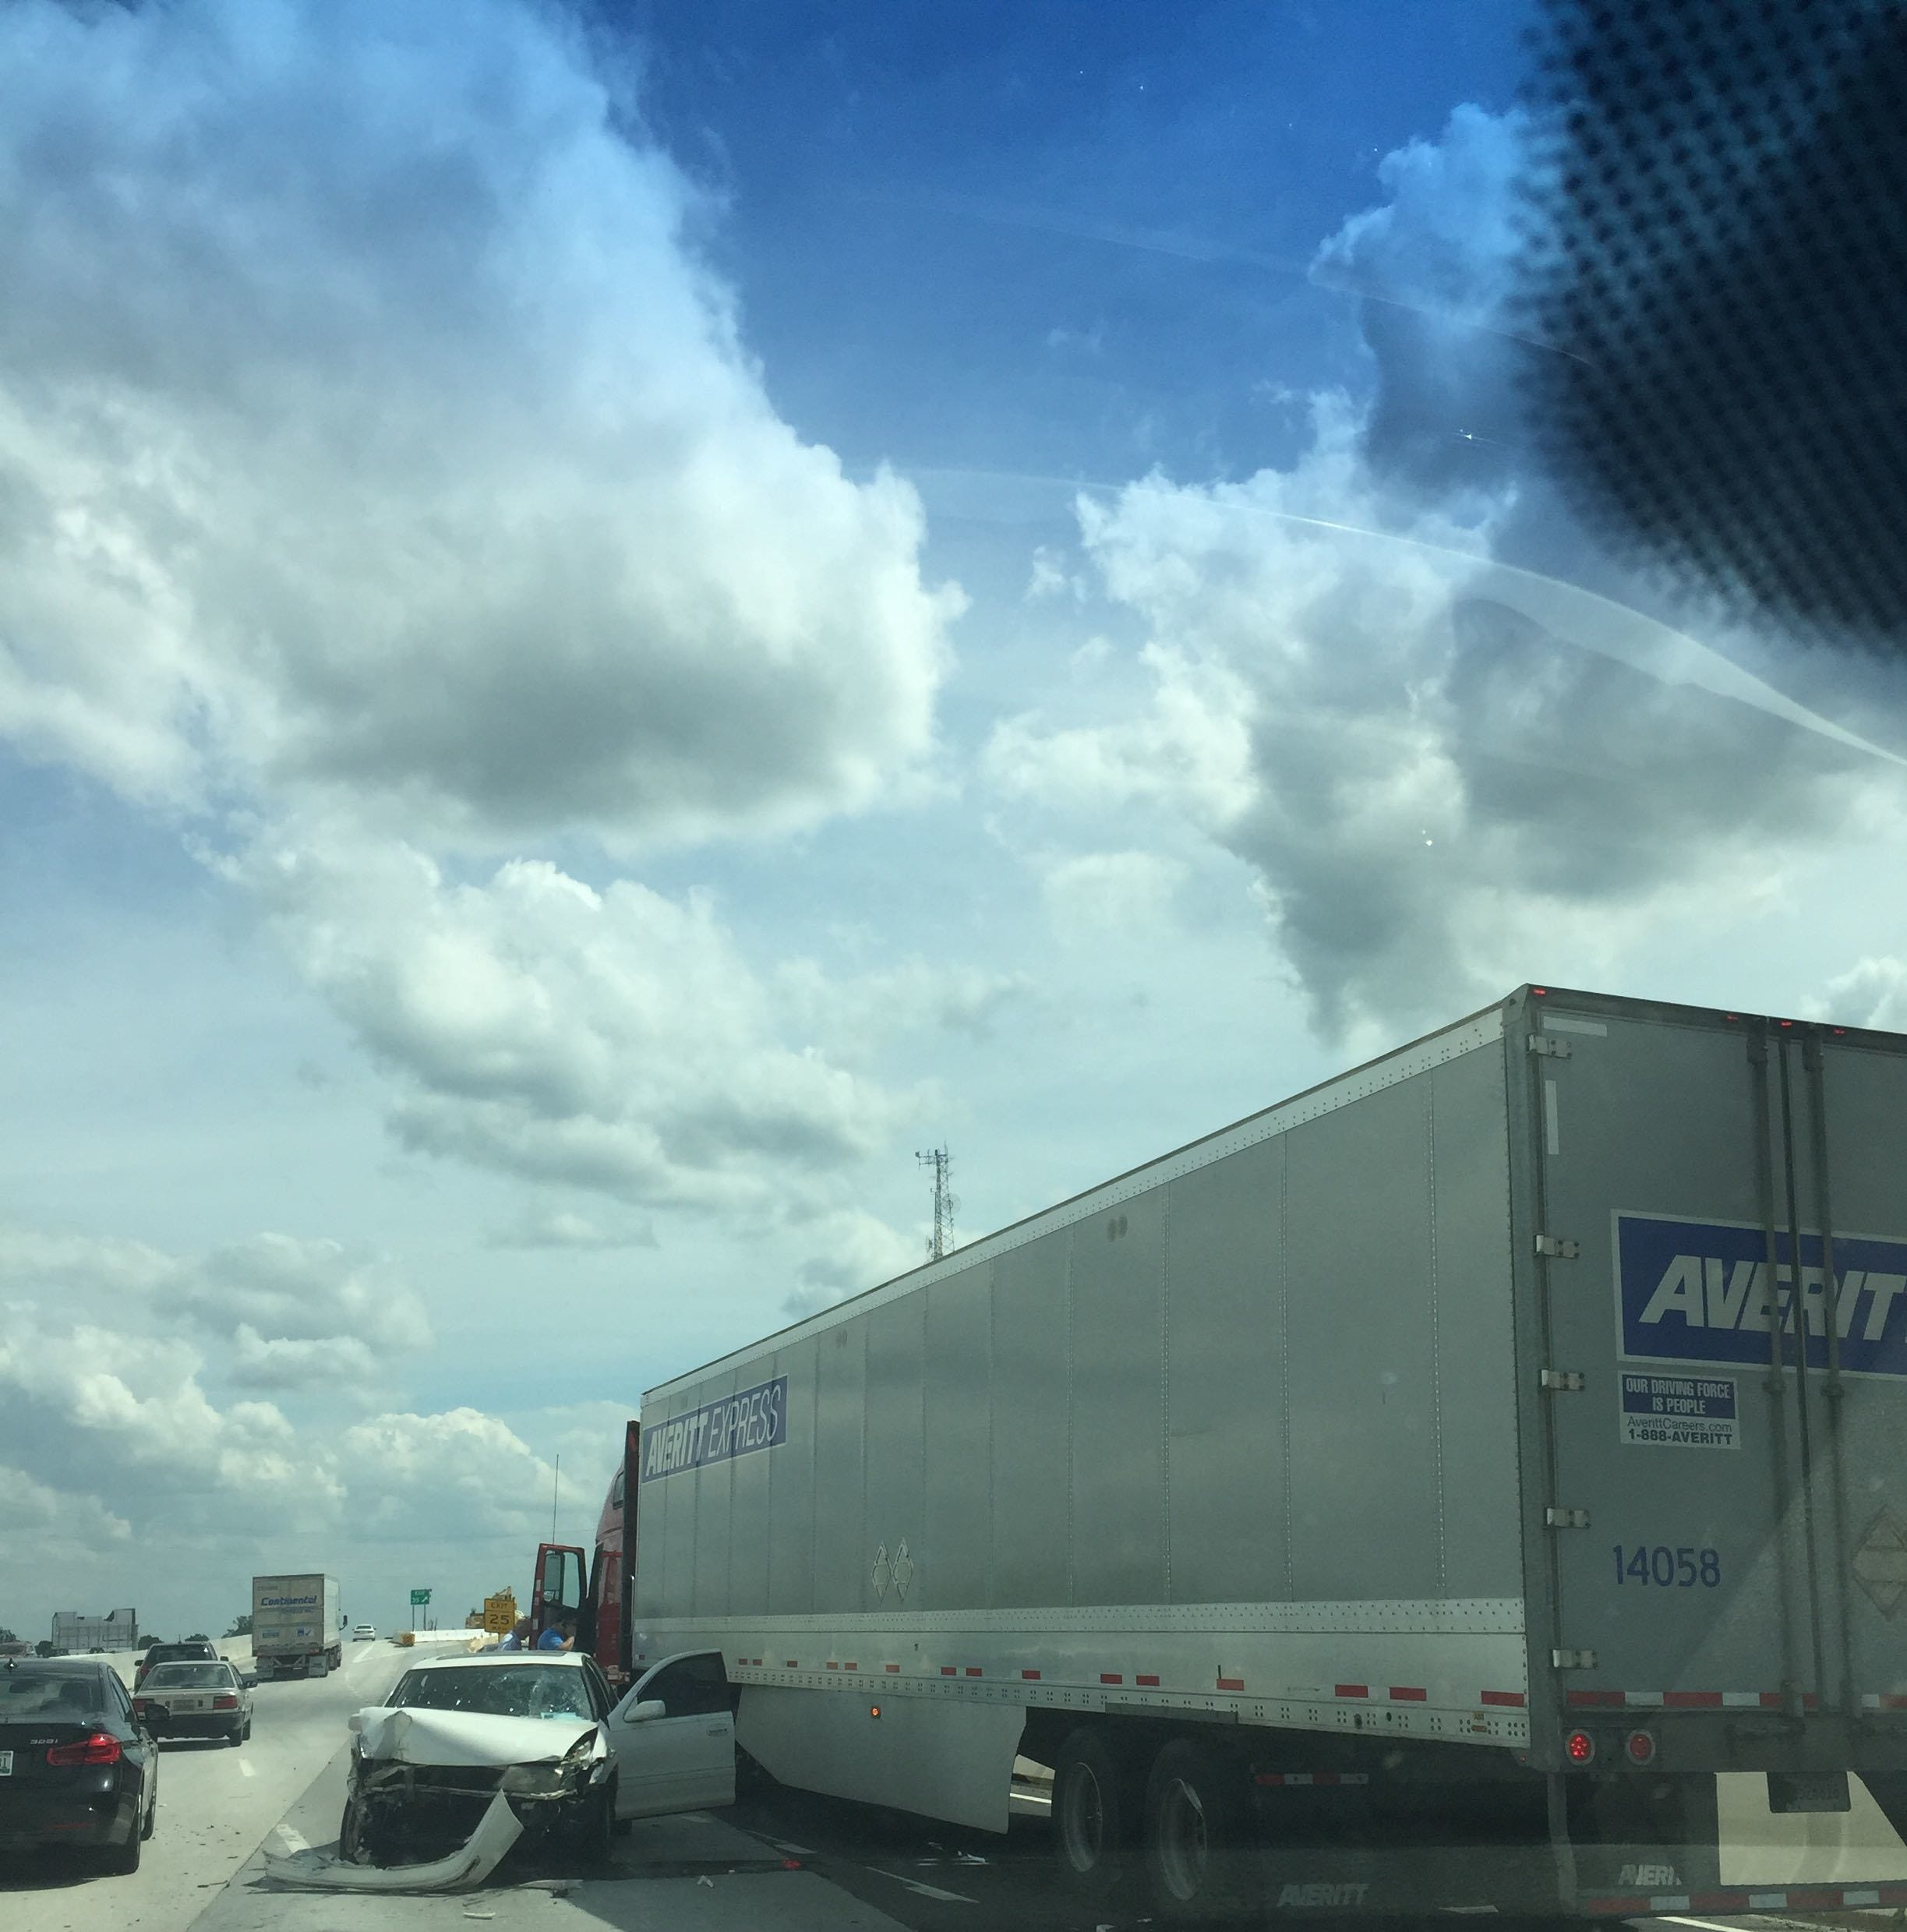 Wreck blocks traffic on I-385 in Greenville County